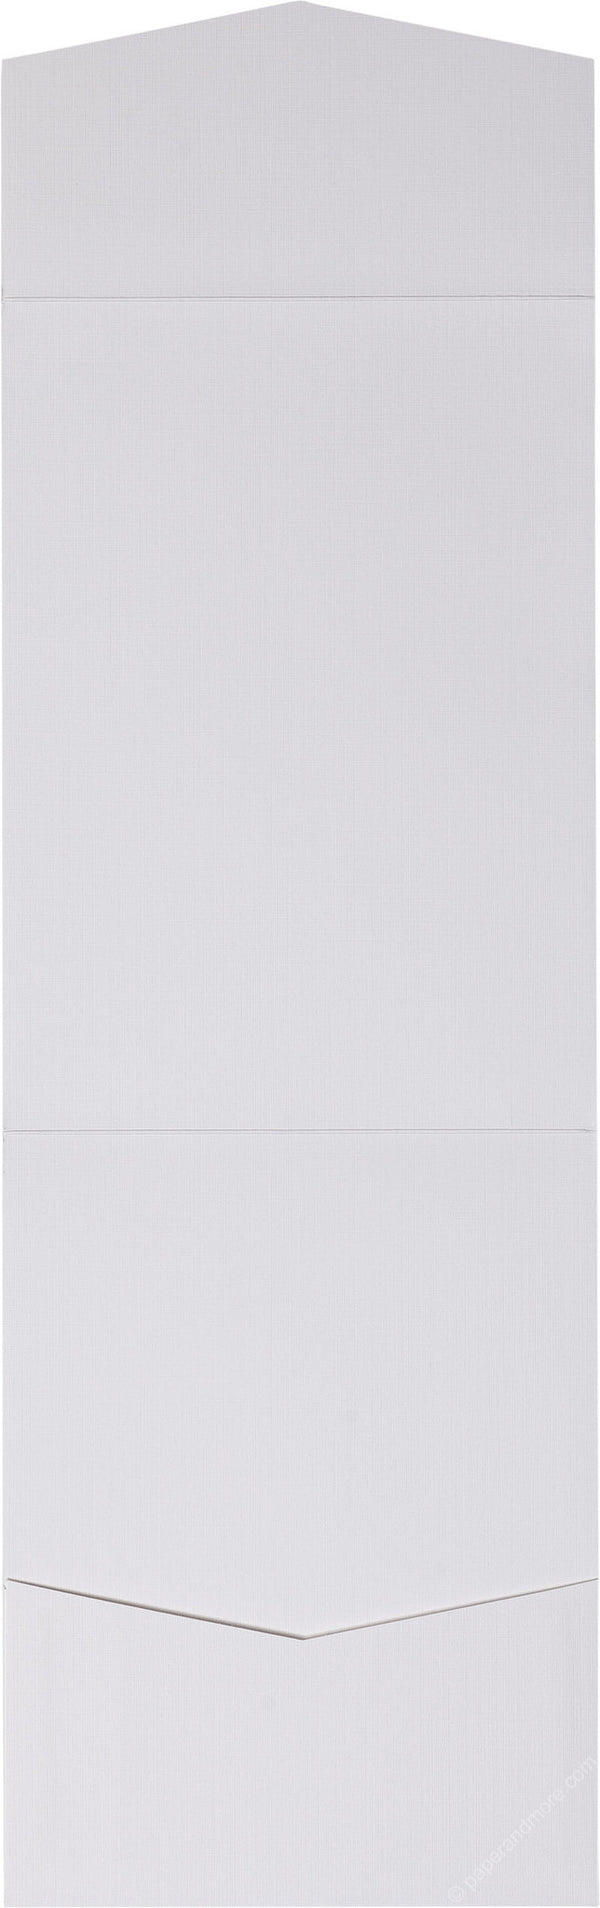 Bright White Linen Pocket Invitation Card, A7 Cascade - Paperandmore.com